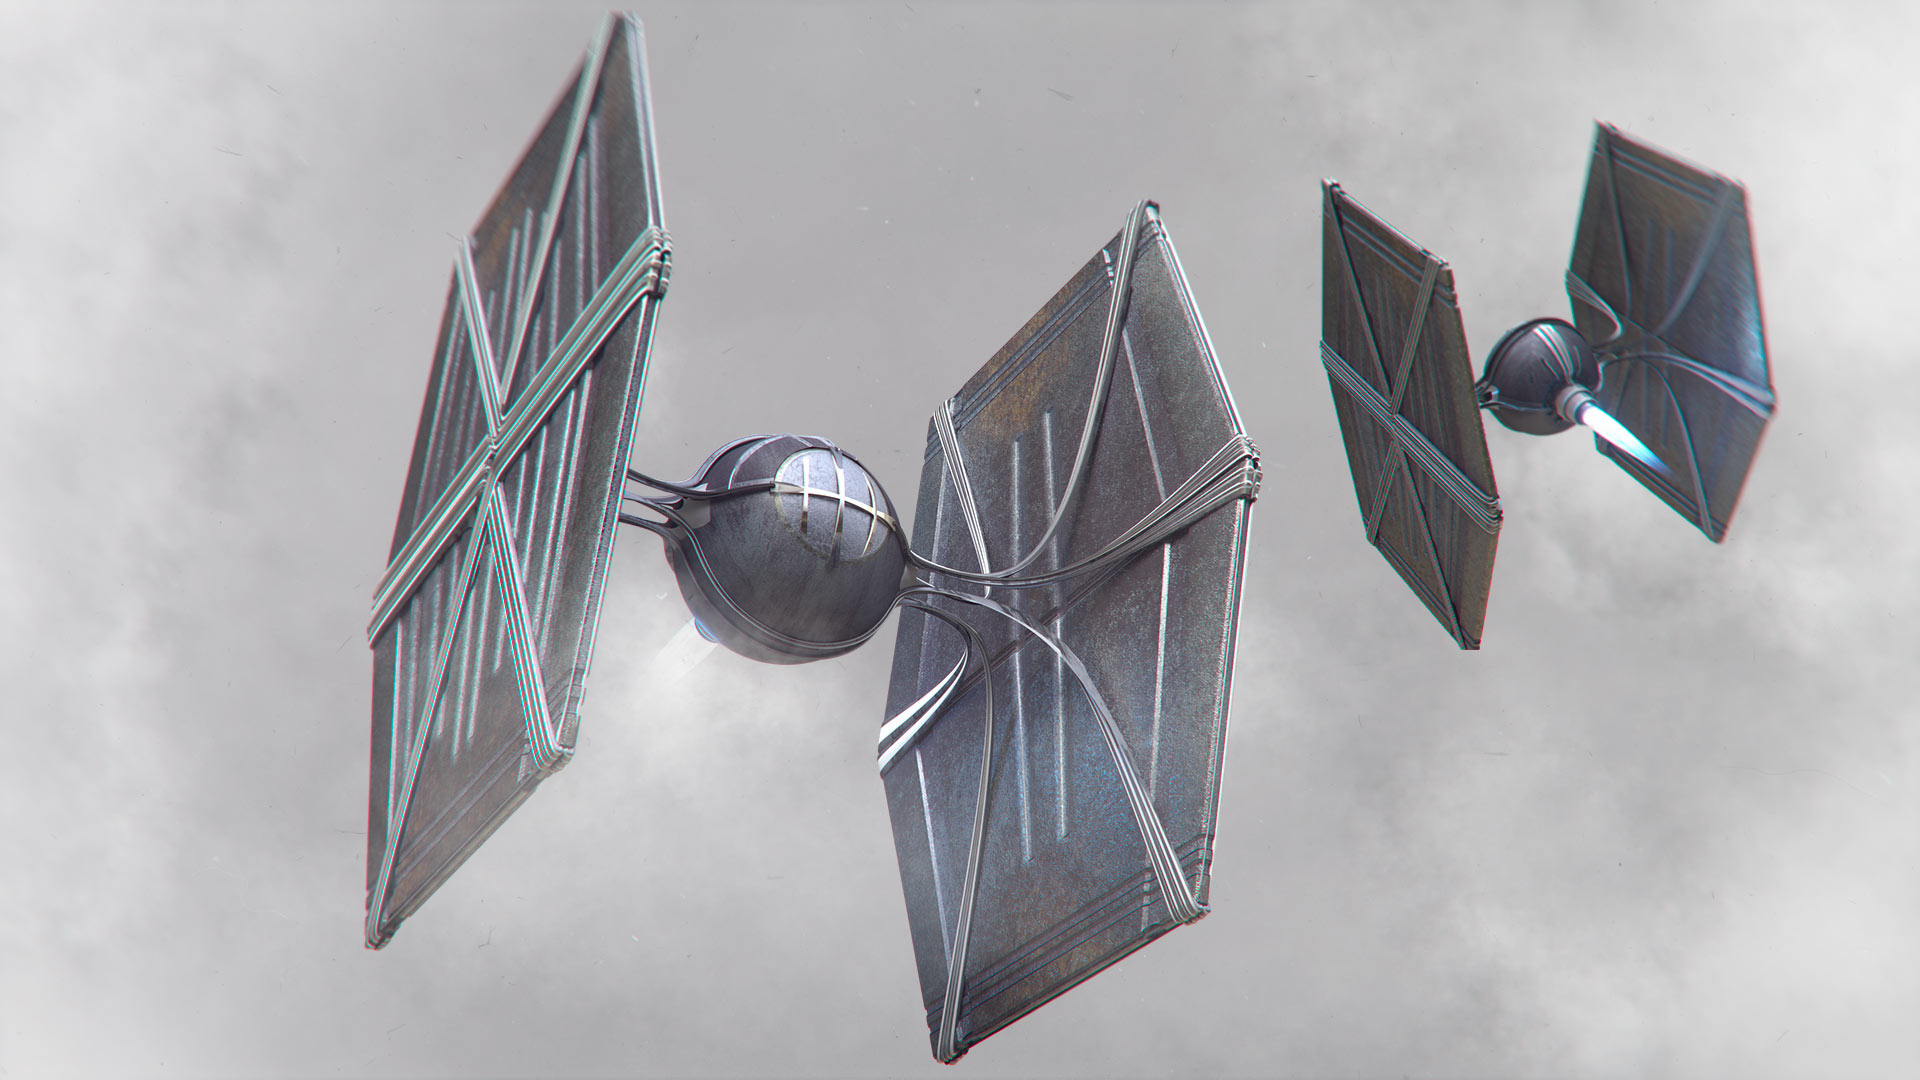 57-051215-tie-fighter-steam-punk-render3-PS-1920-Q44.jpg